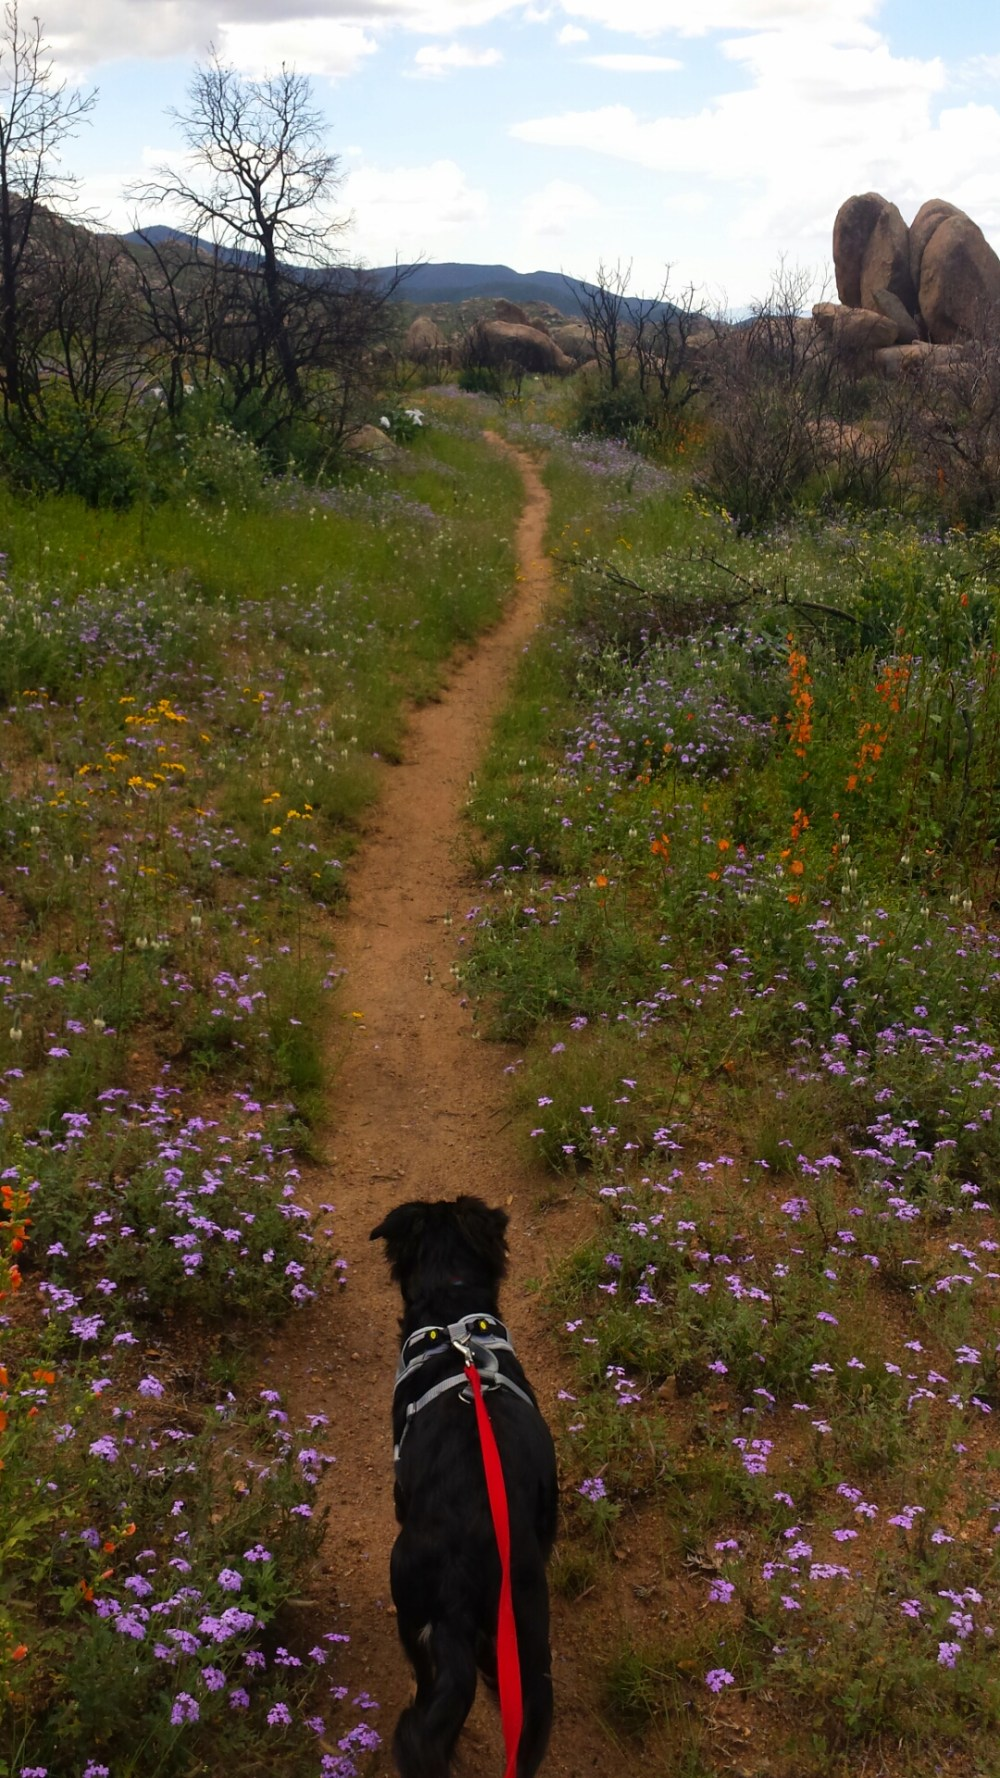 Wildflowers put on a spectacular display of color along the trail